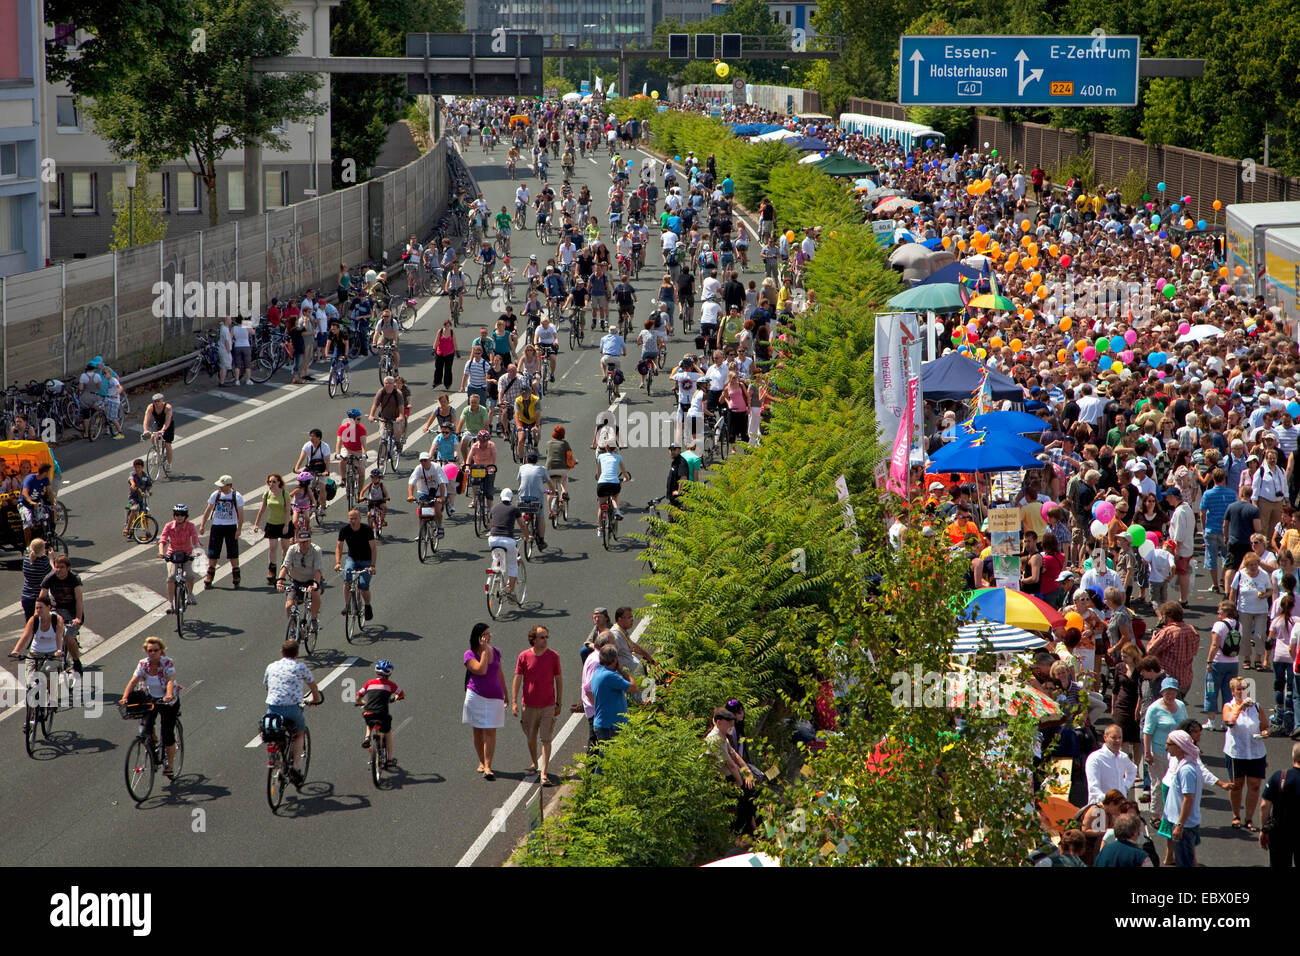 people on the event 'Still-Leben Ruhrschnellweg' on highway A 40, Germany, North Rhine-Westphalia, Ruhr - Stock Image